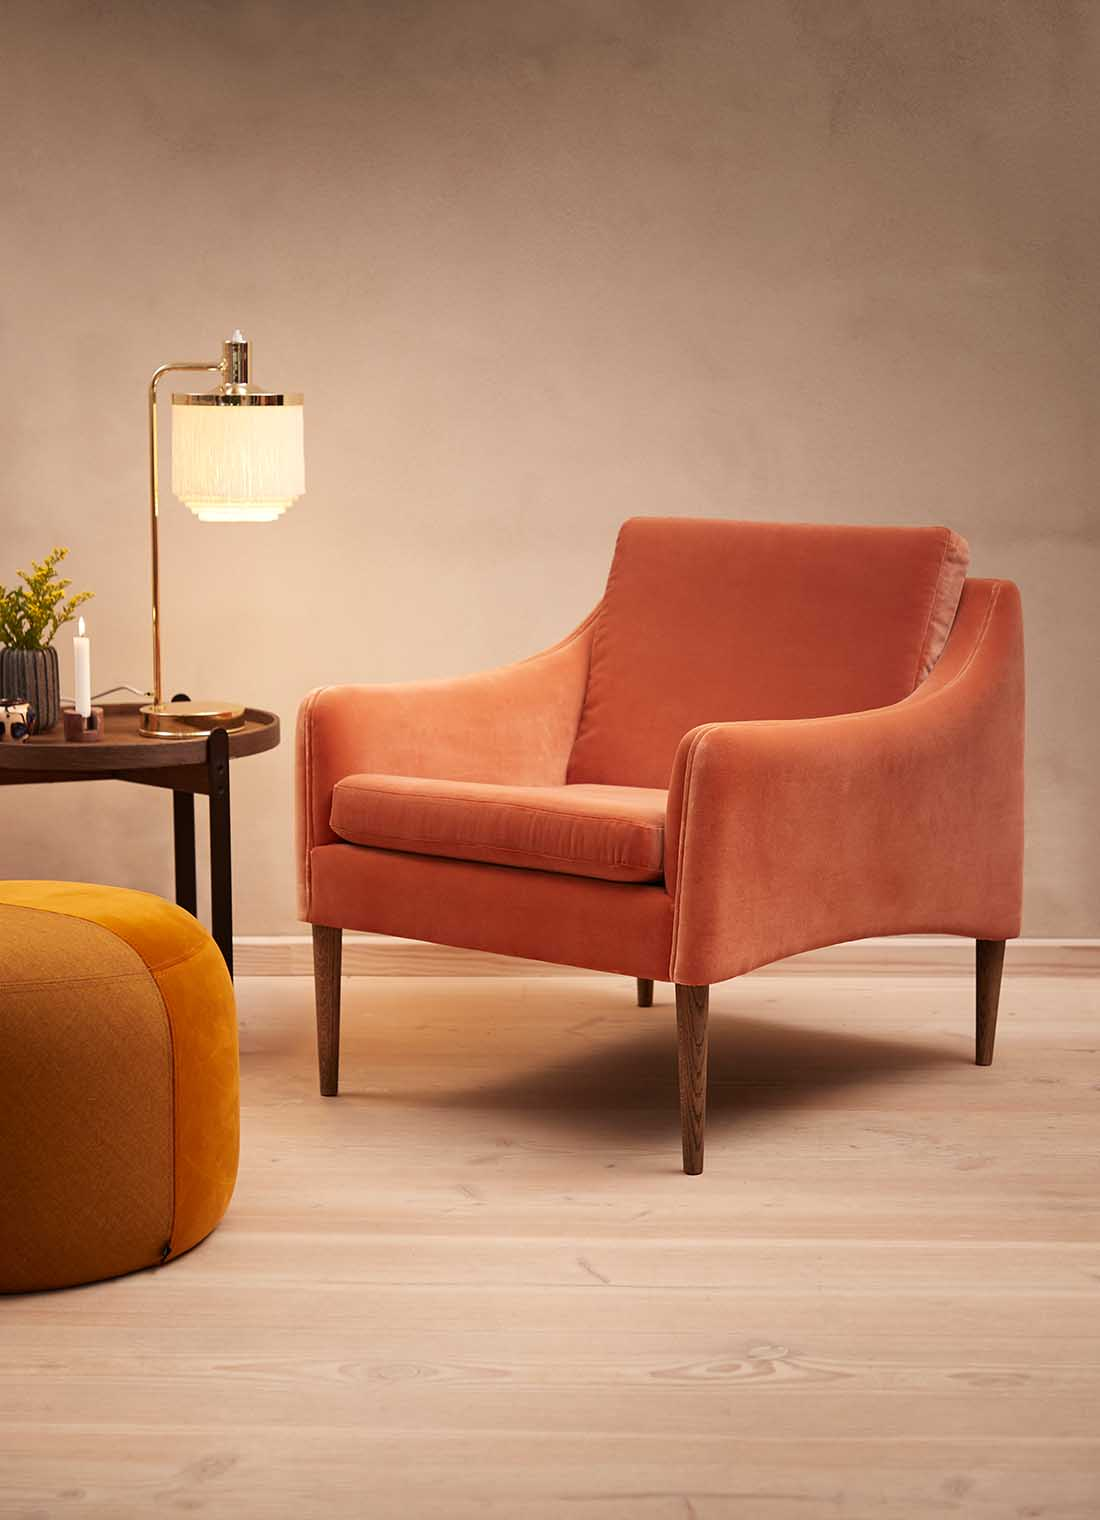 Mr. Olsen lounge chair in rusty rose velvet with a table and a pouf.